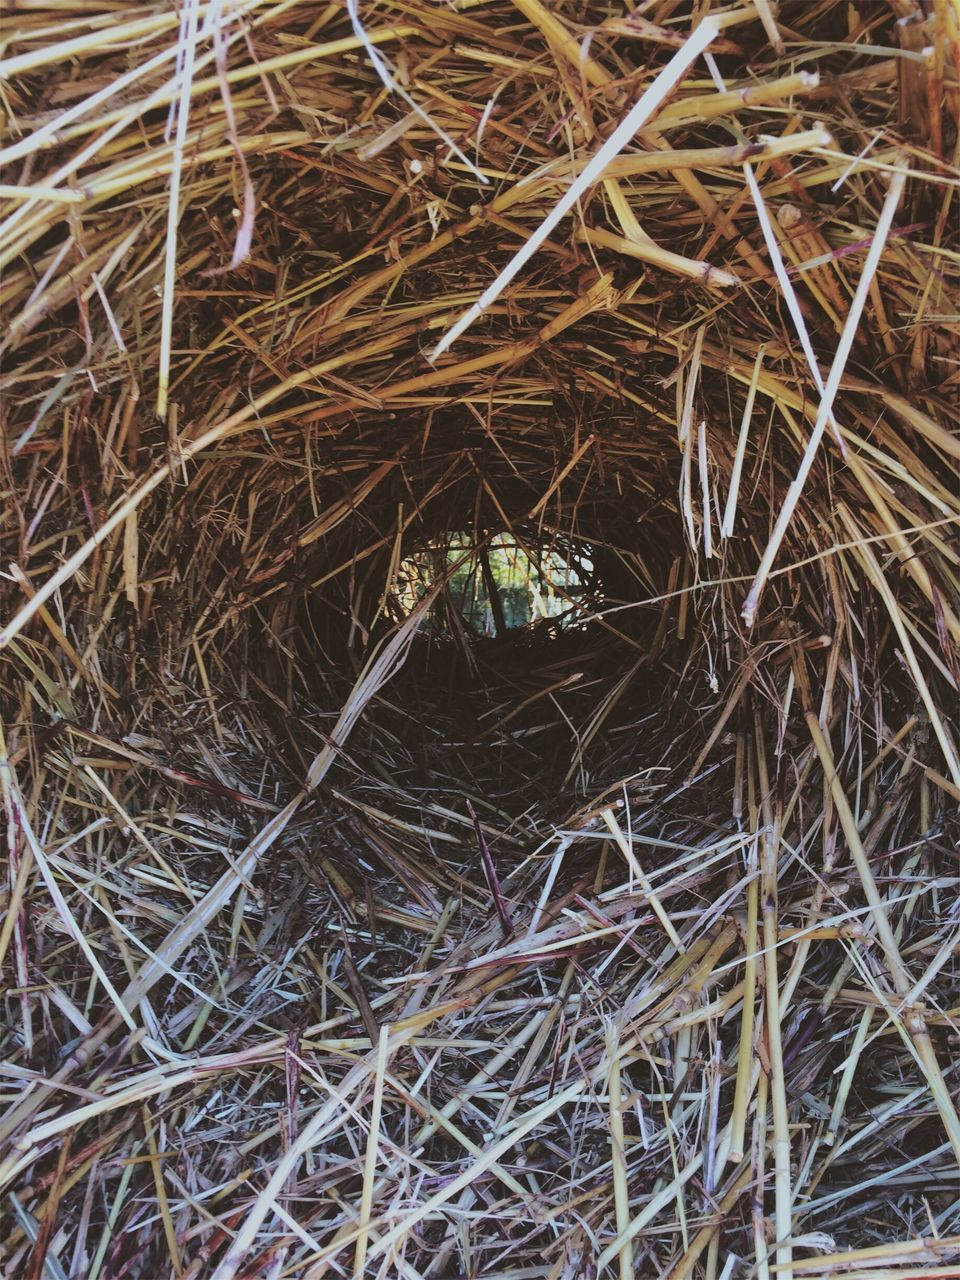 hay, animal themes, no people, bird nest, outdoors, one animal, high angle view, animals in the wild, day, straw, close-up, grass, full frame, nature